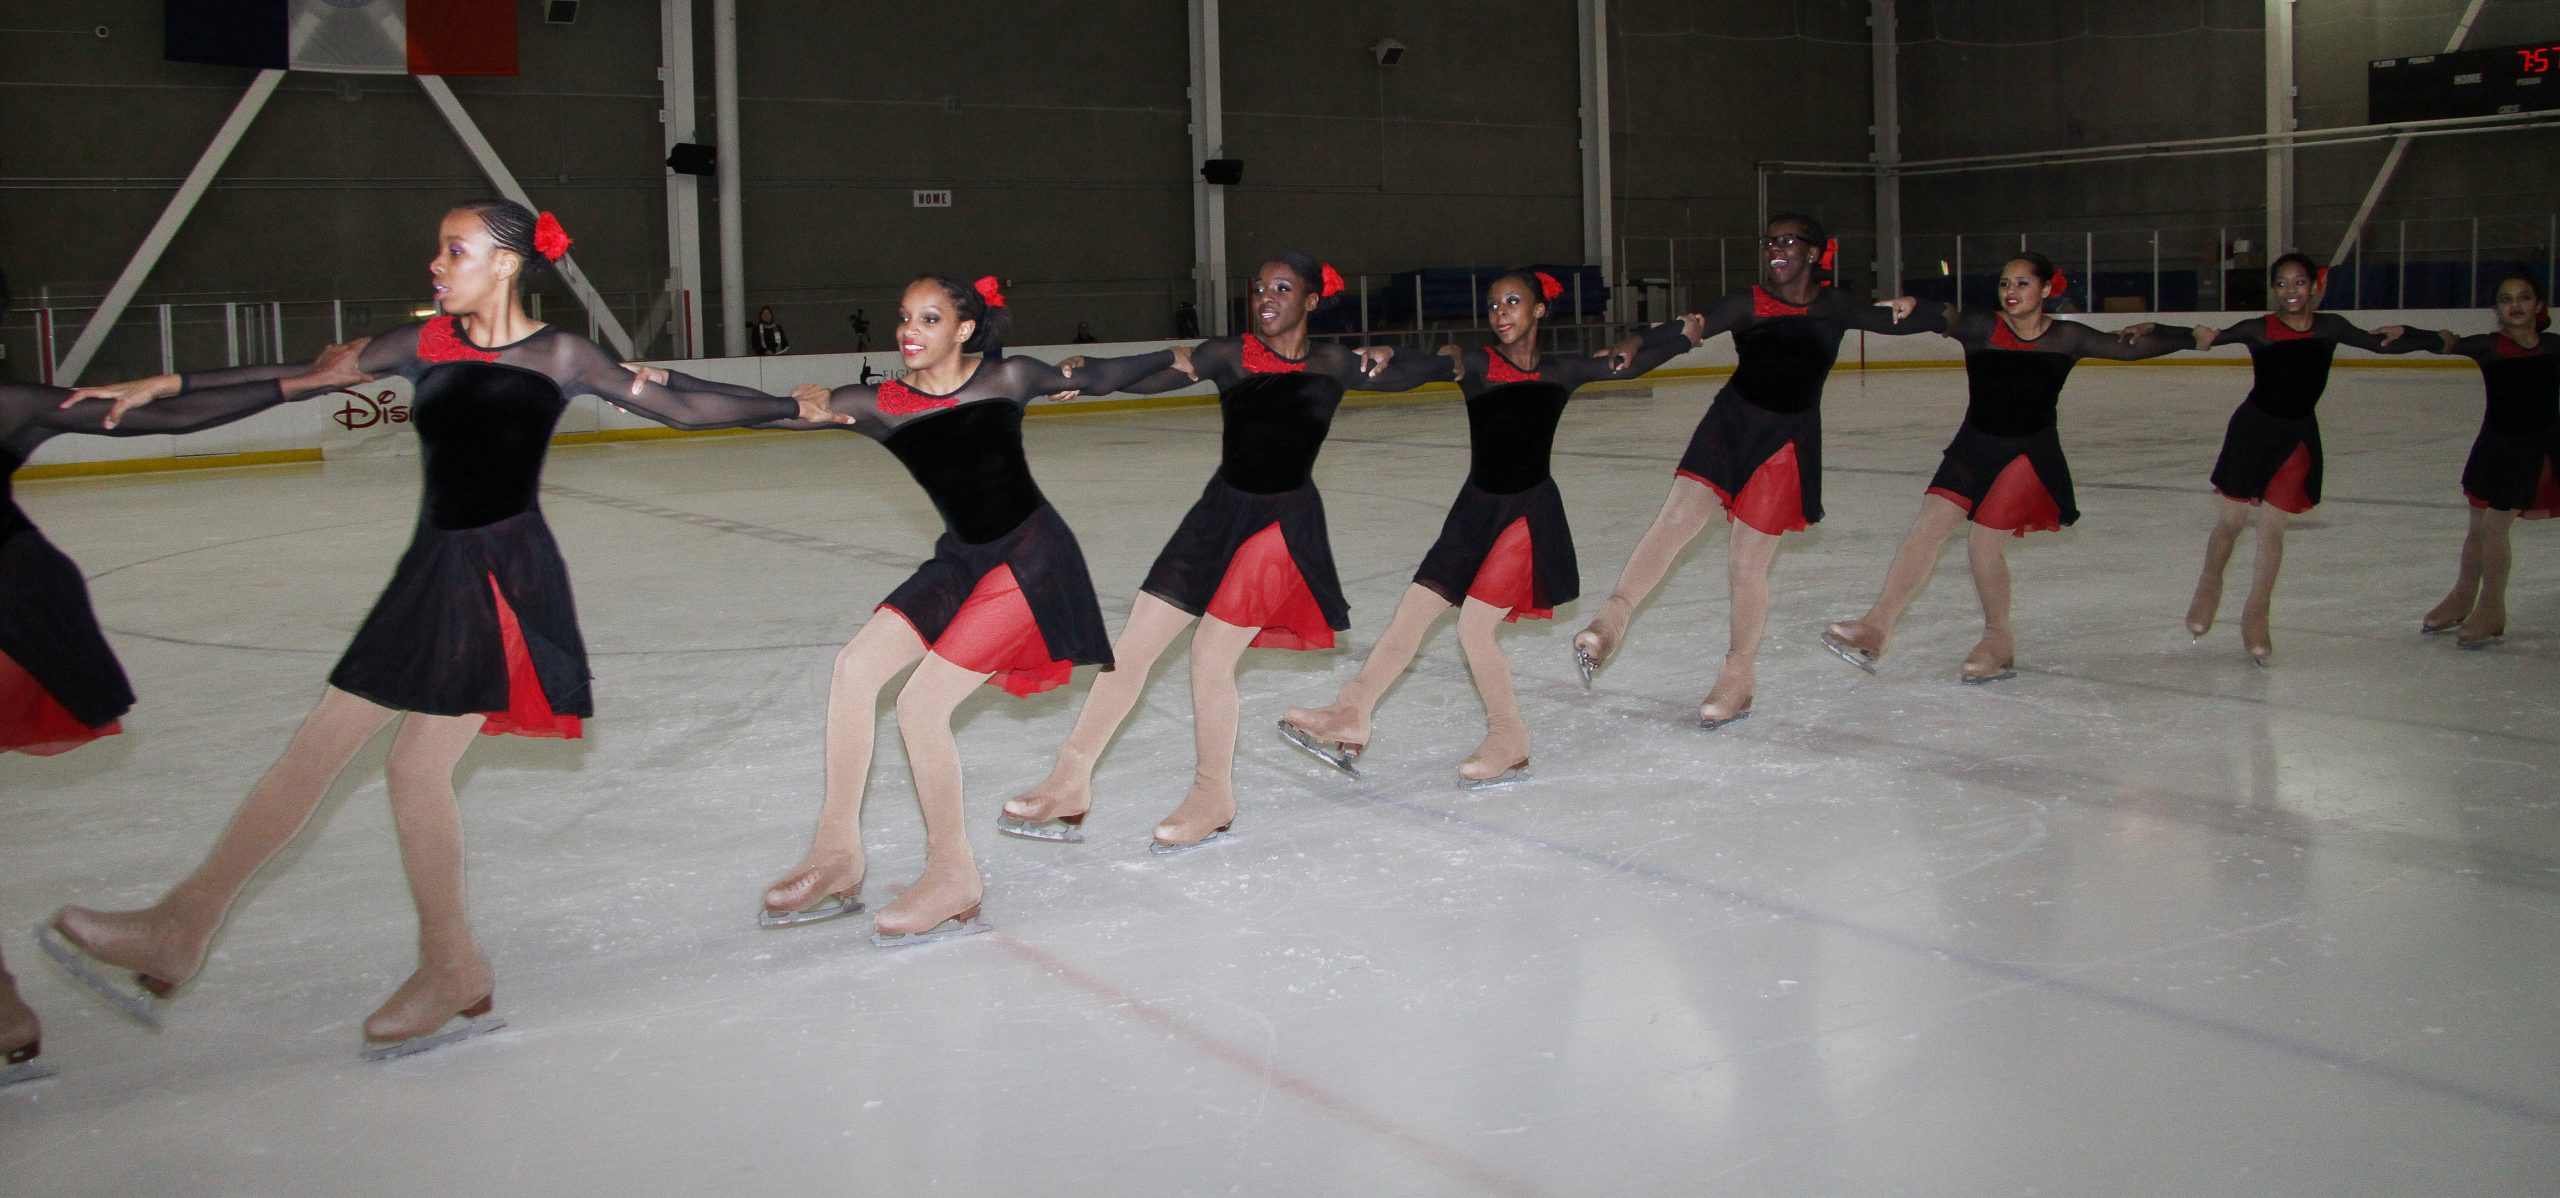 2012 Ice Show at Chelsea Piers